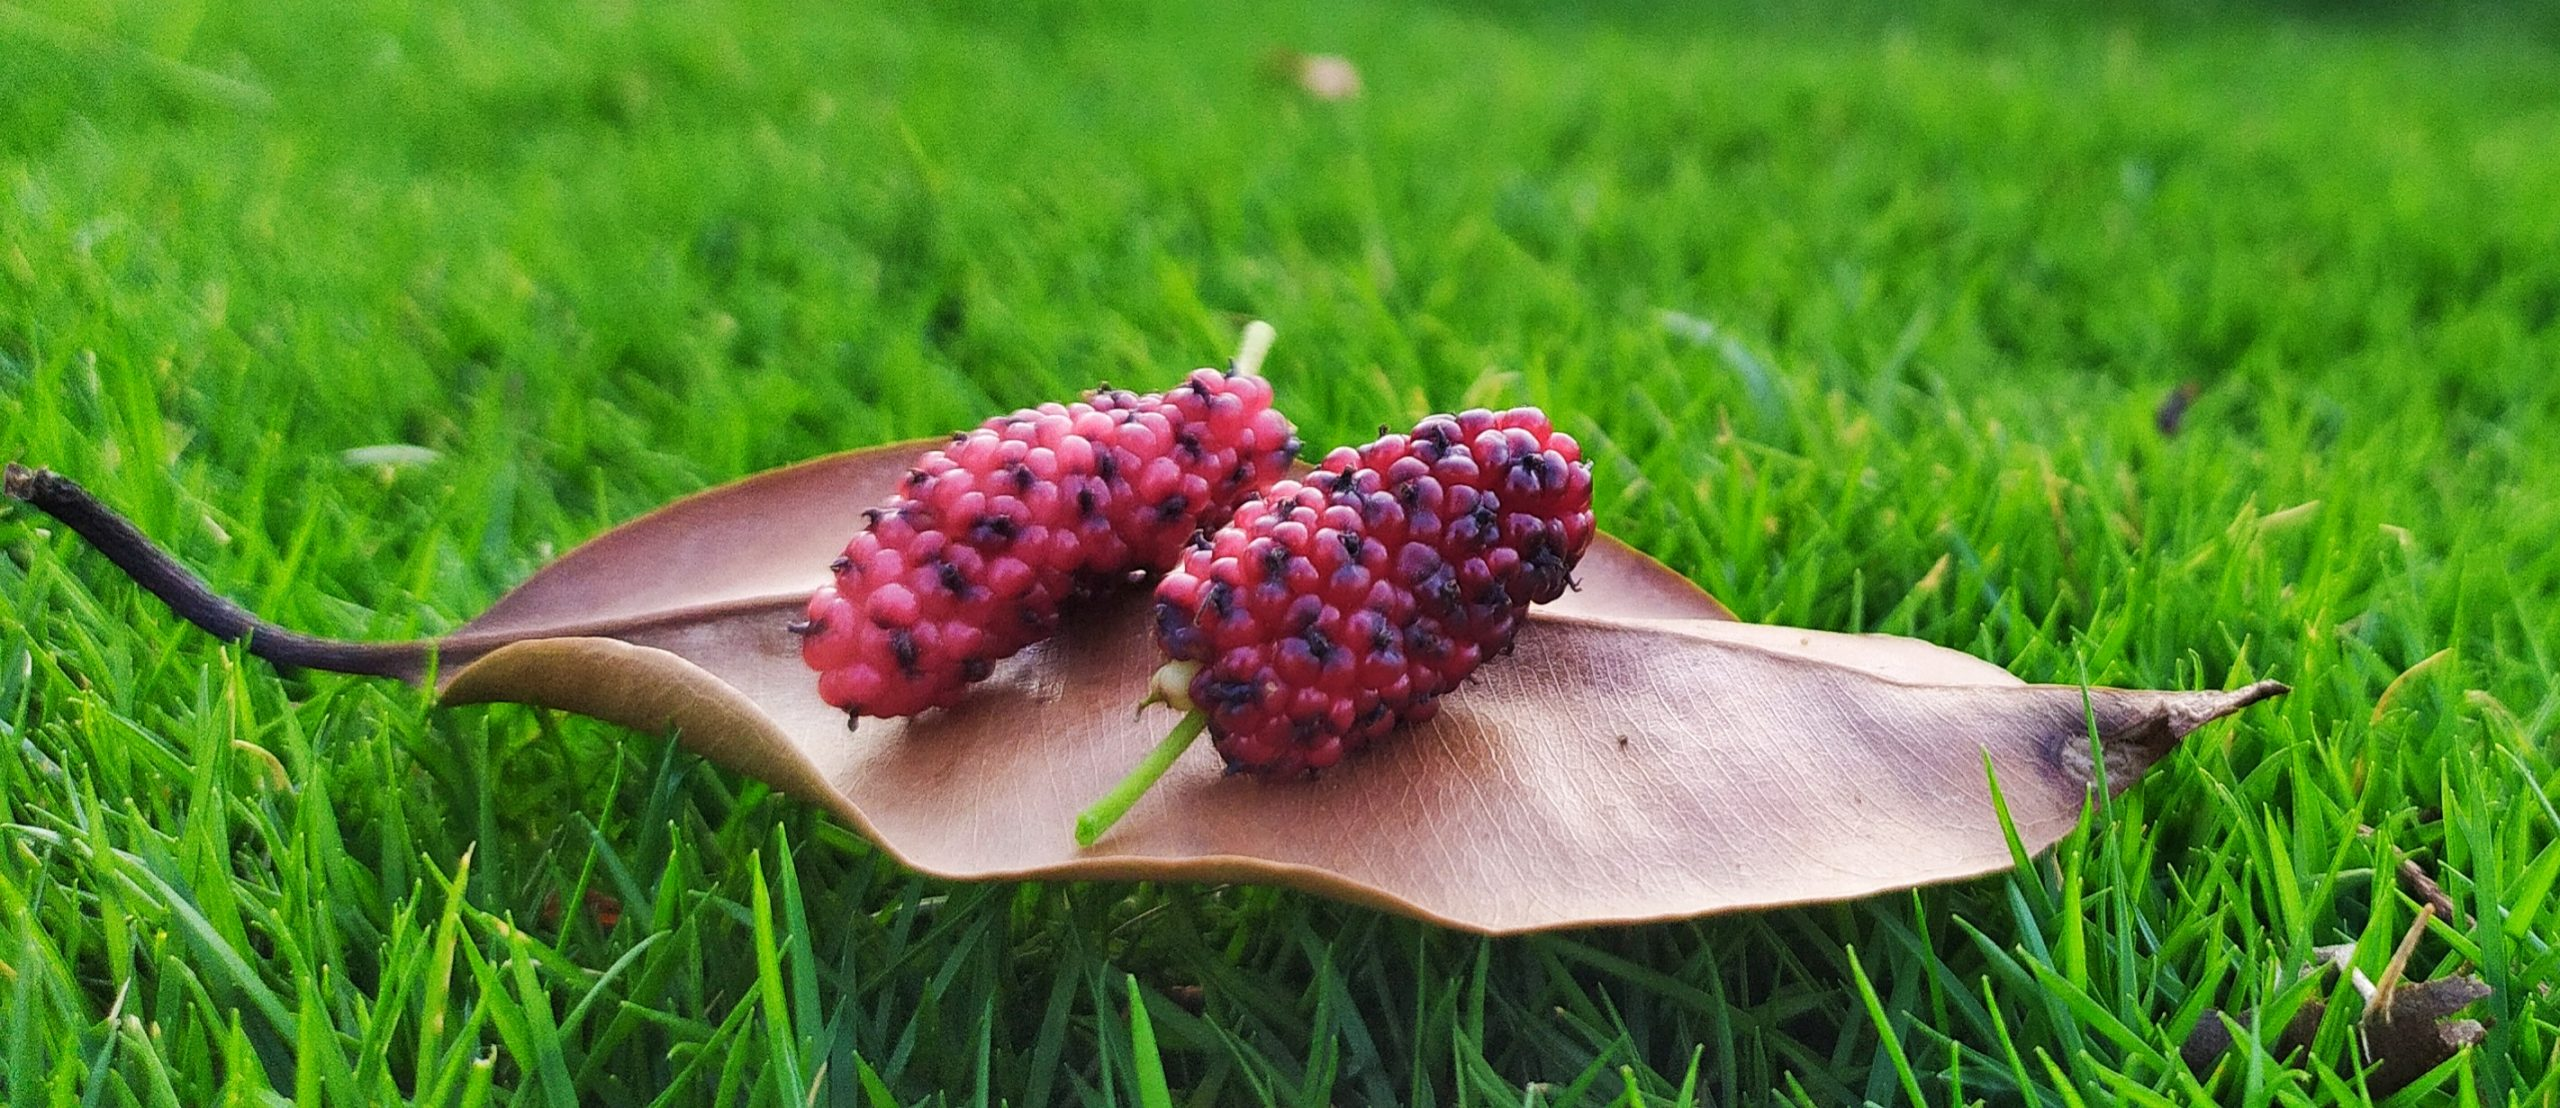 Mulberries on a leaf